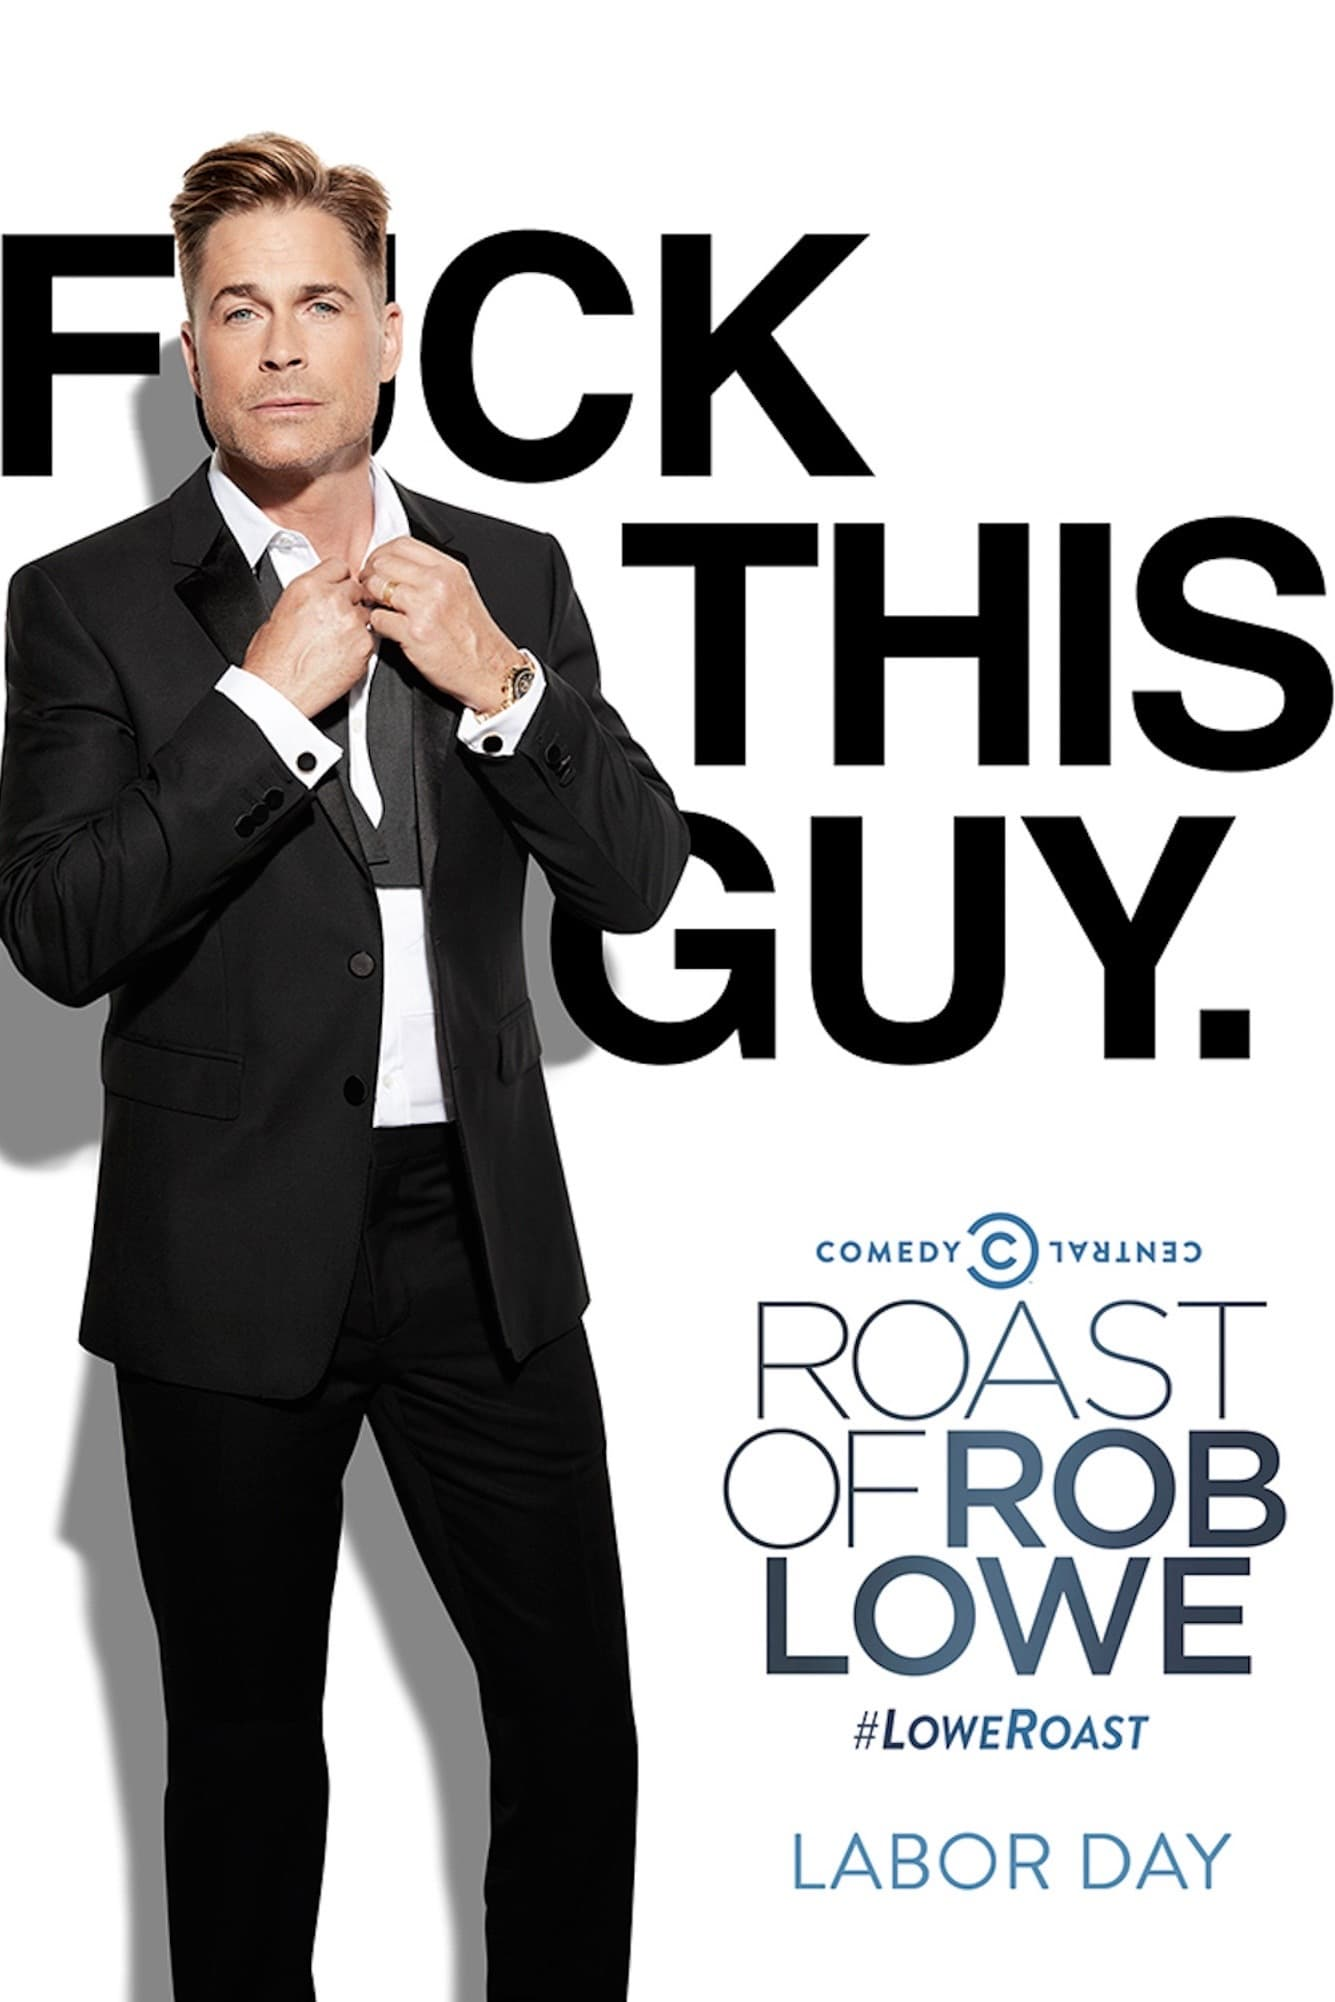 comedy central roast of justin bieber full episode free